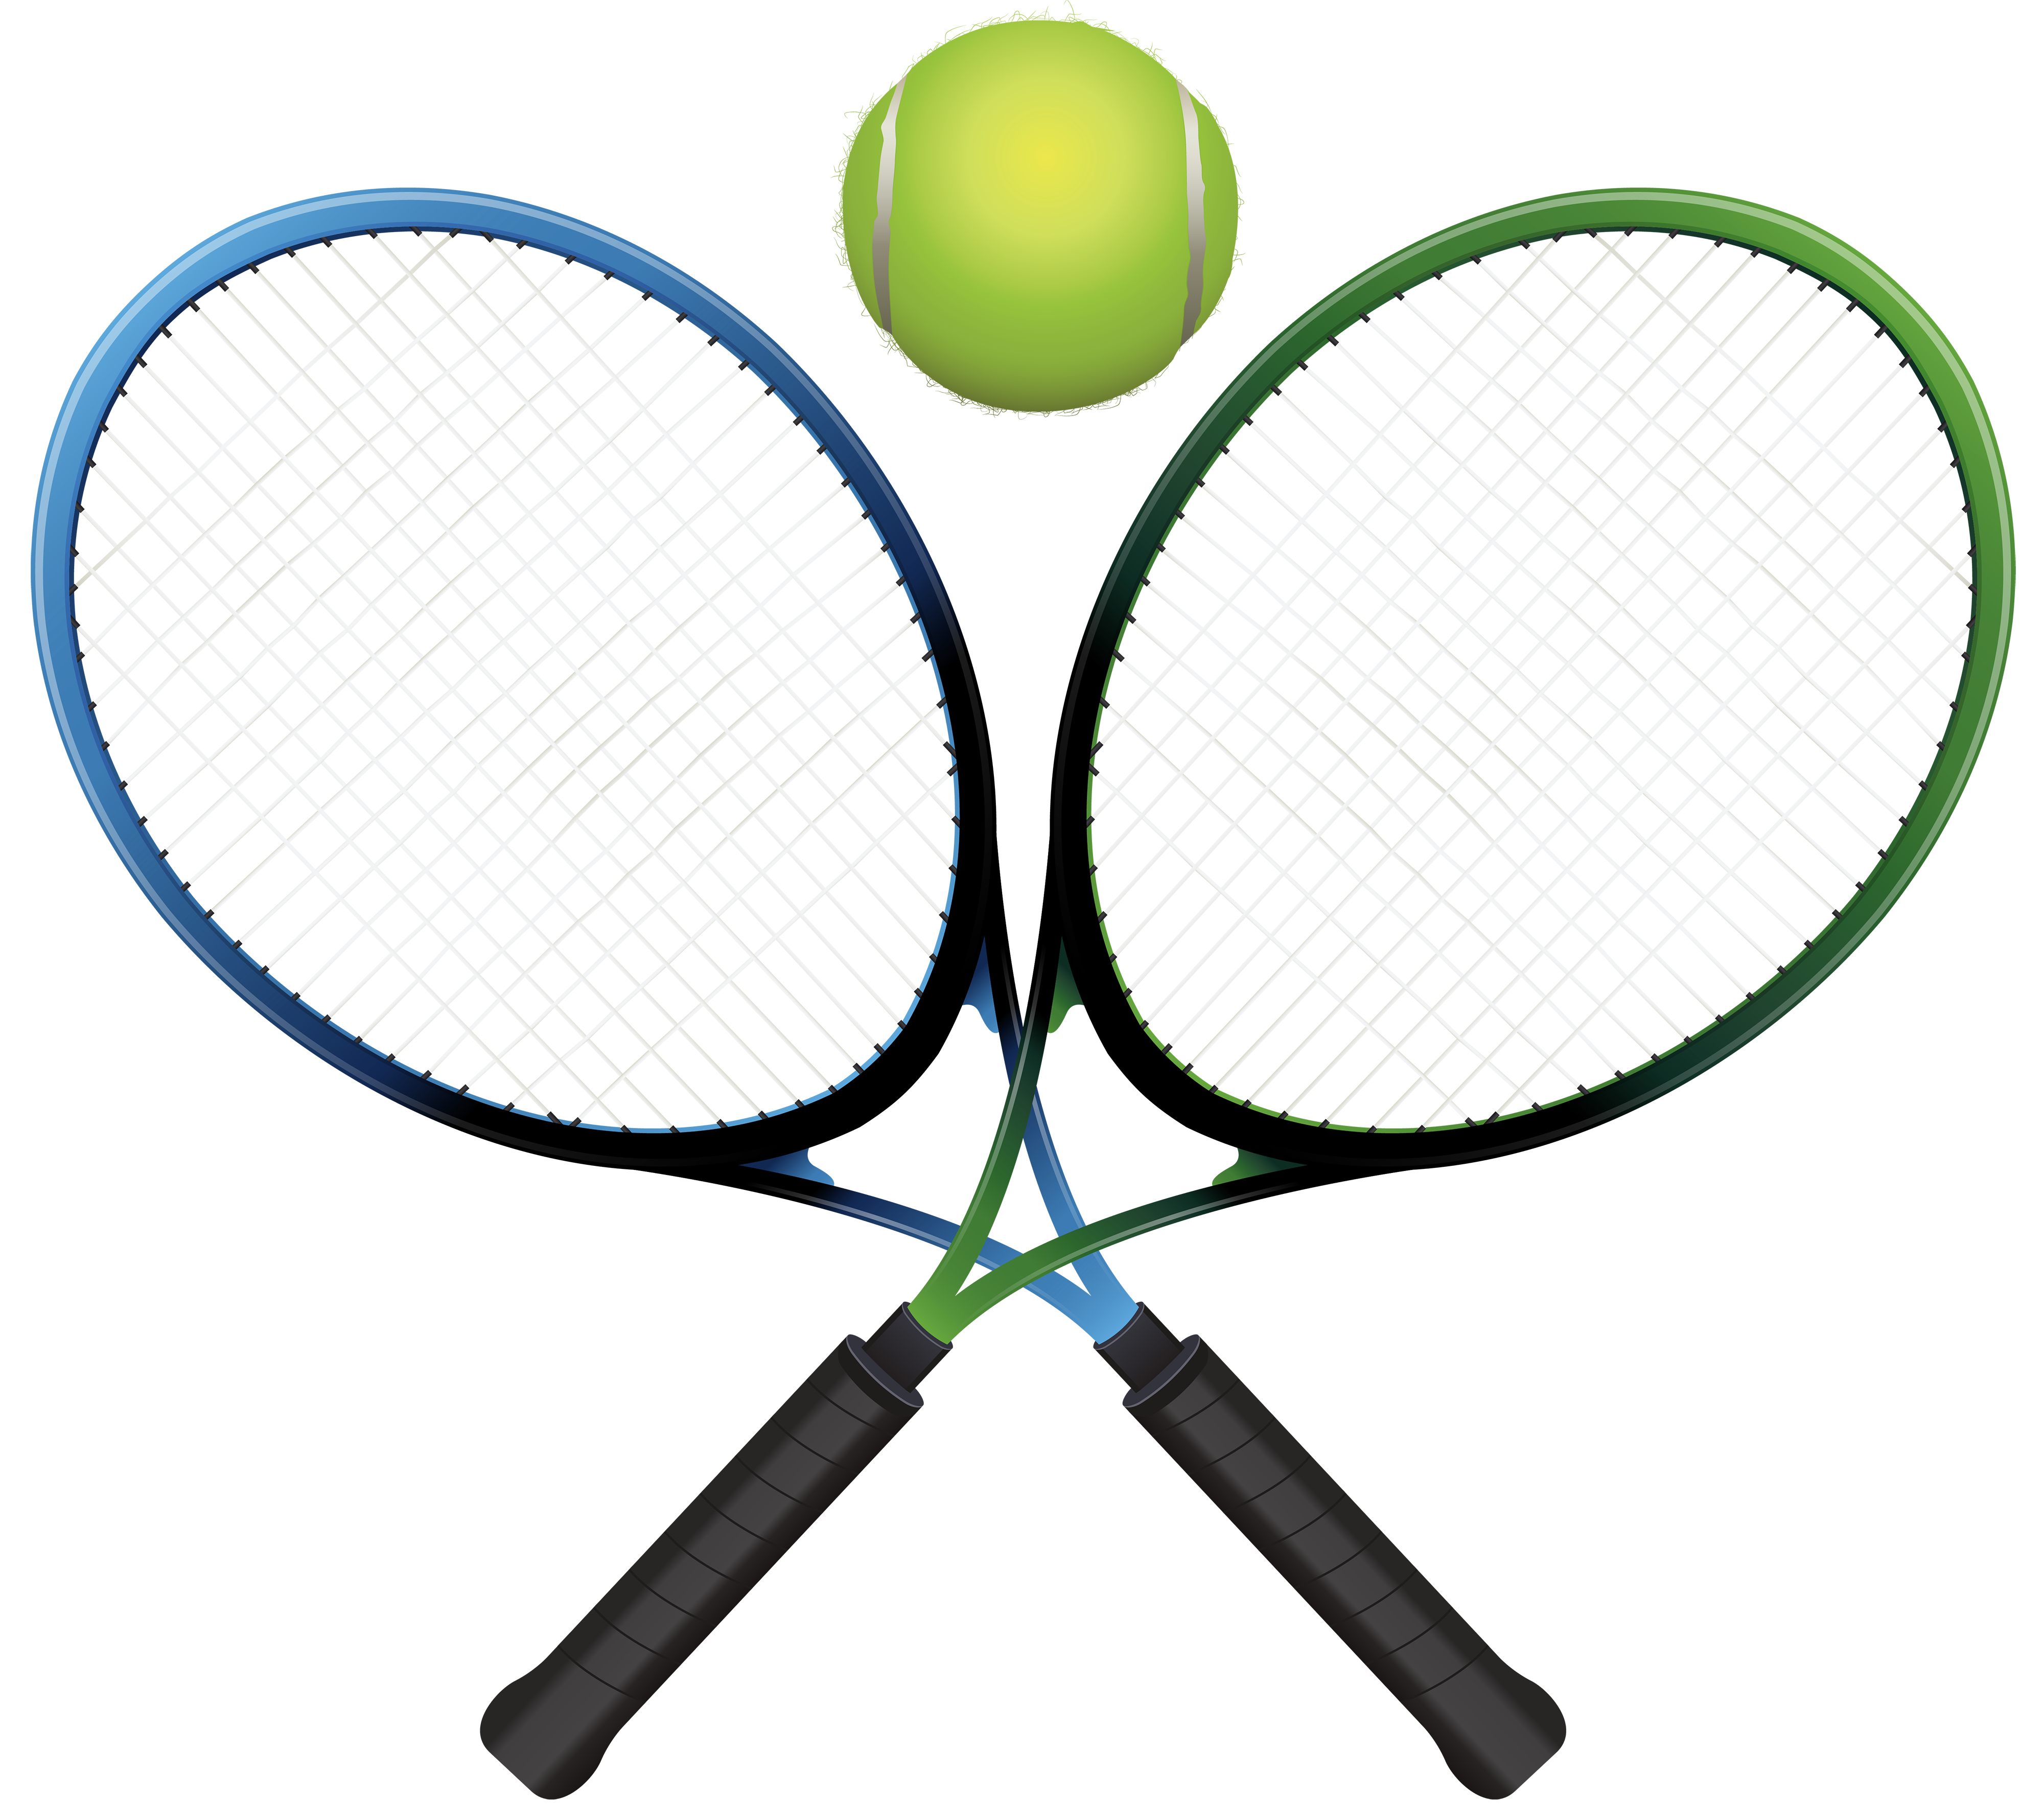 Rackets and ball png. Cup clipart tennis